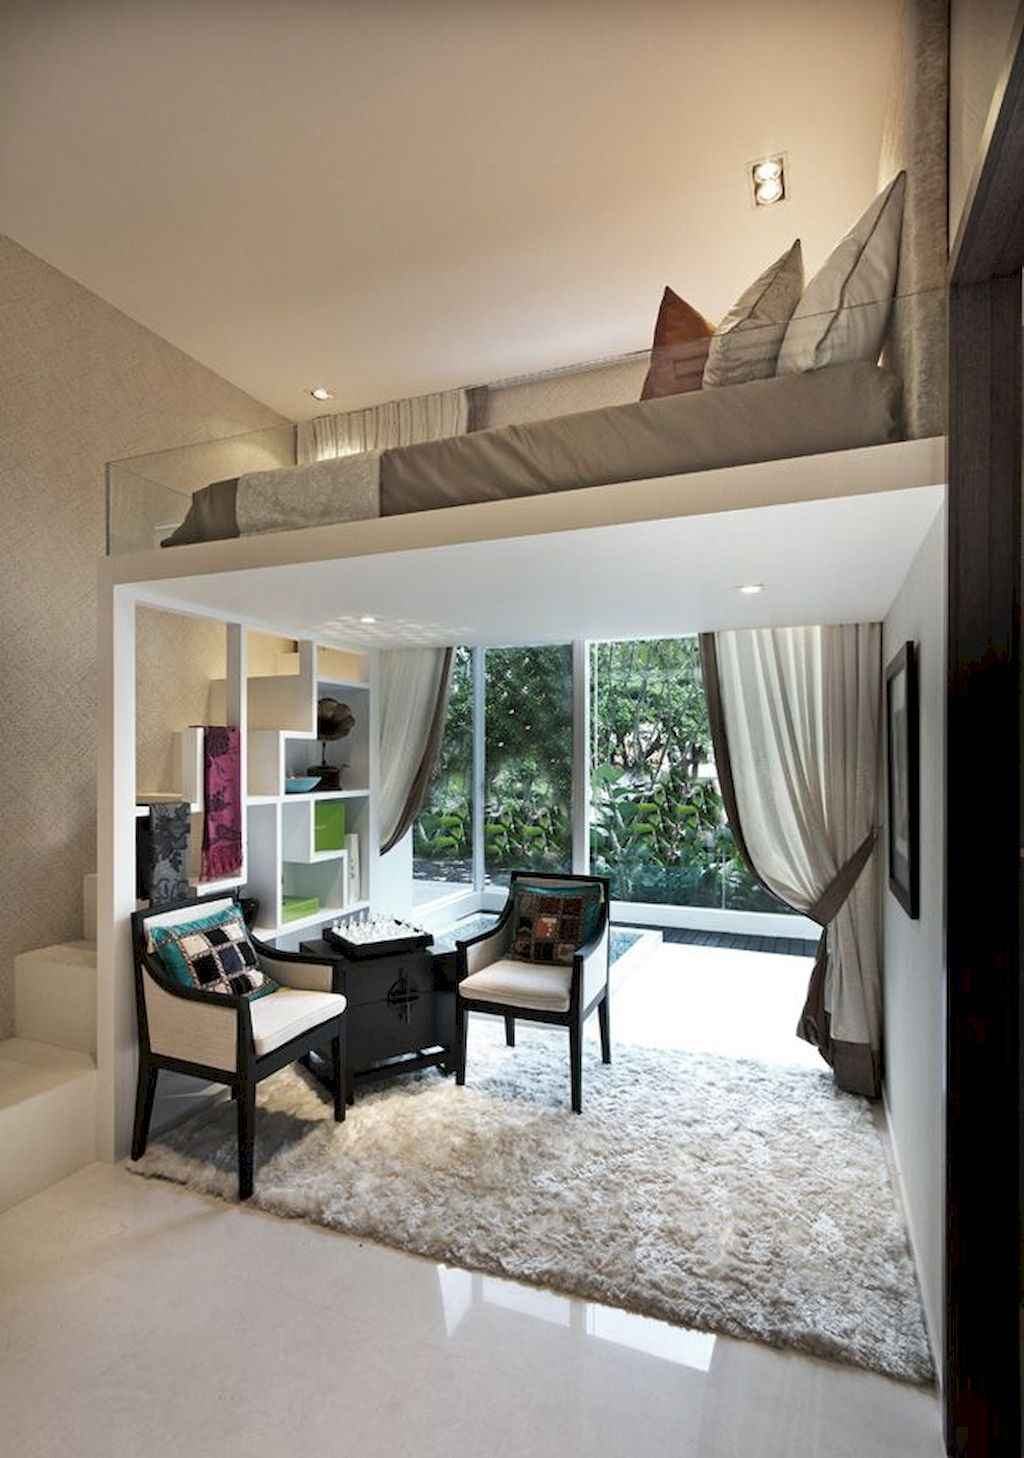 Cool small apartment decorating ideas on a budget (42)